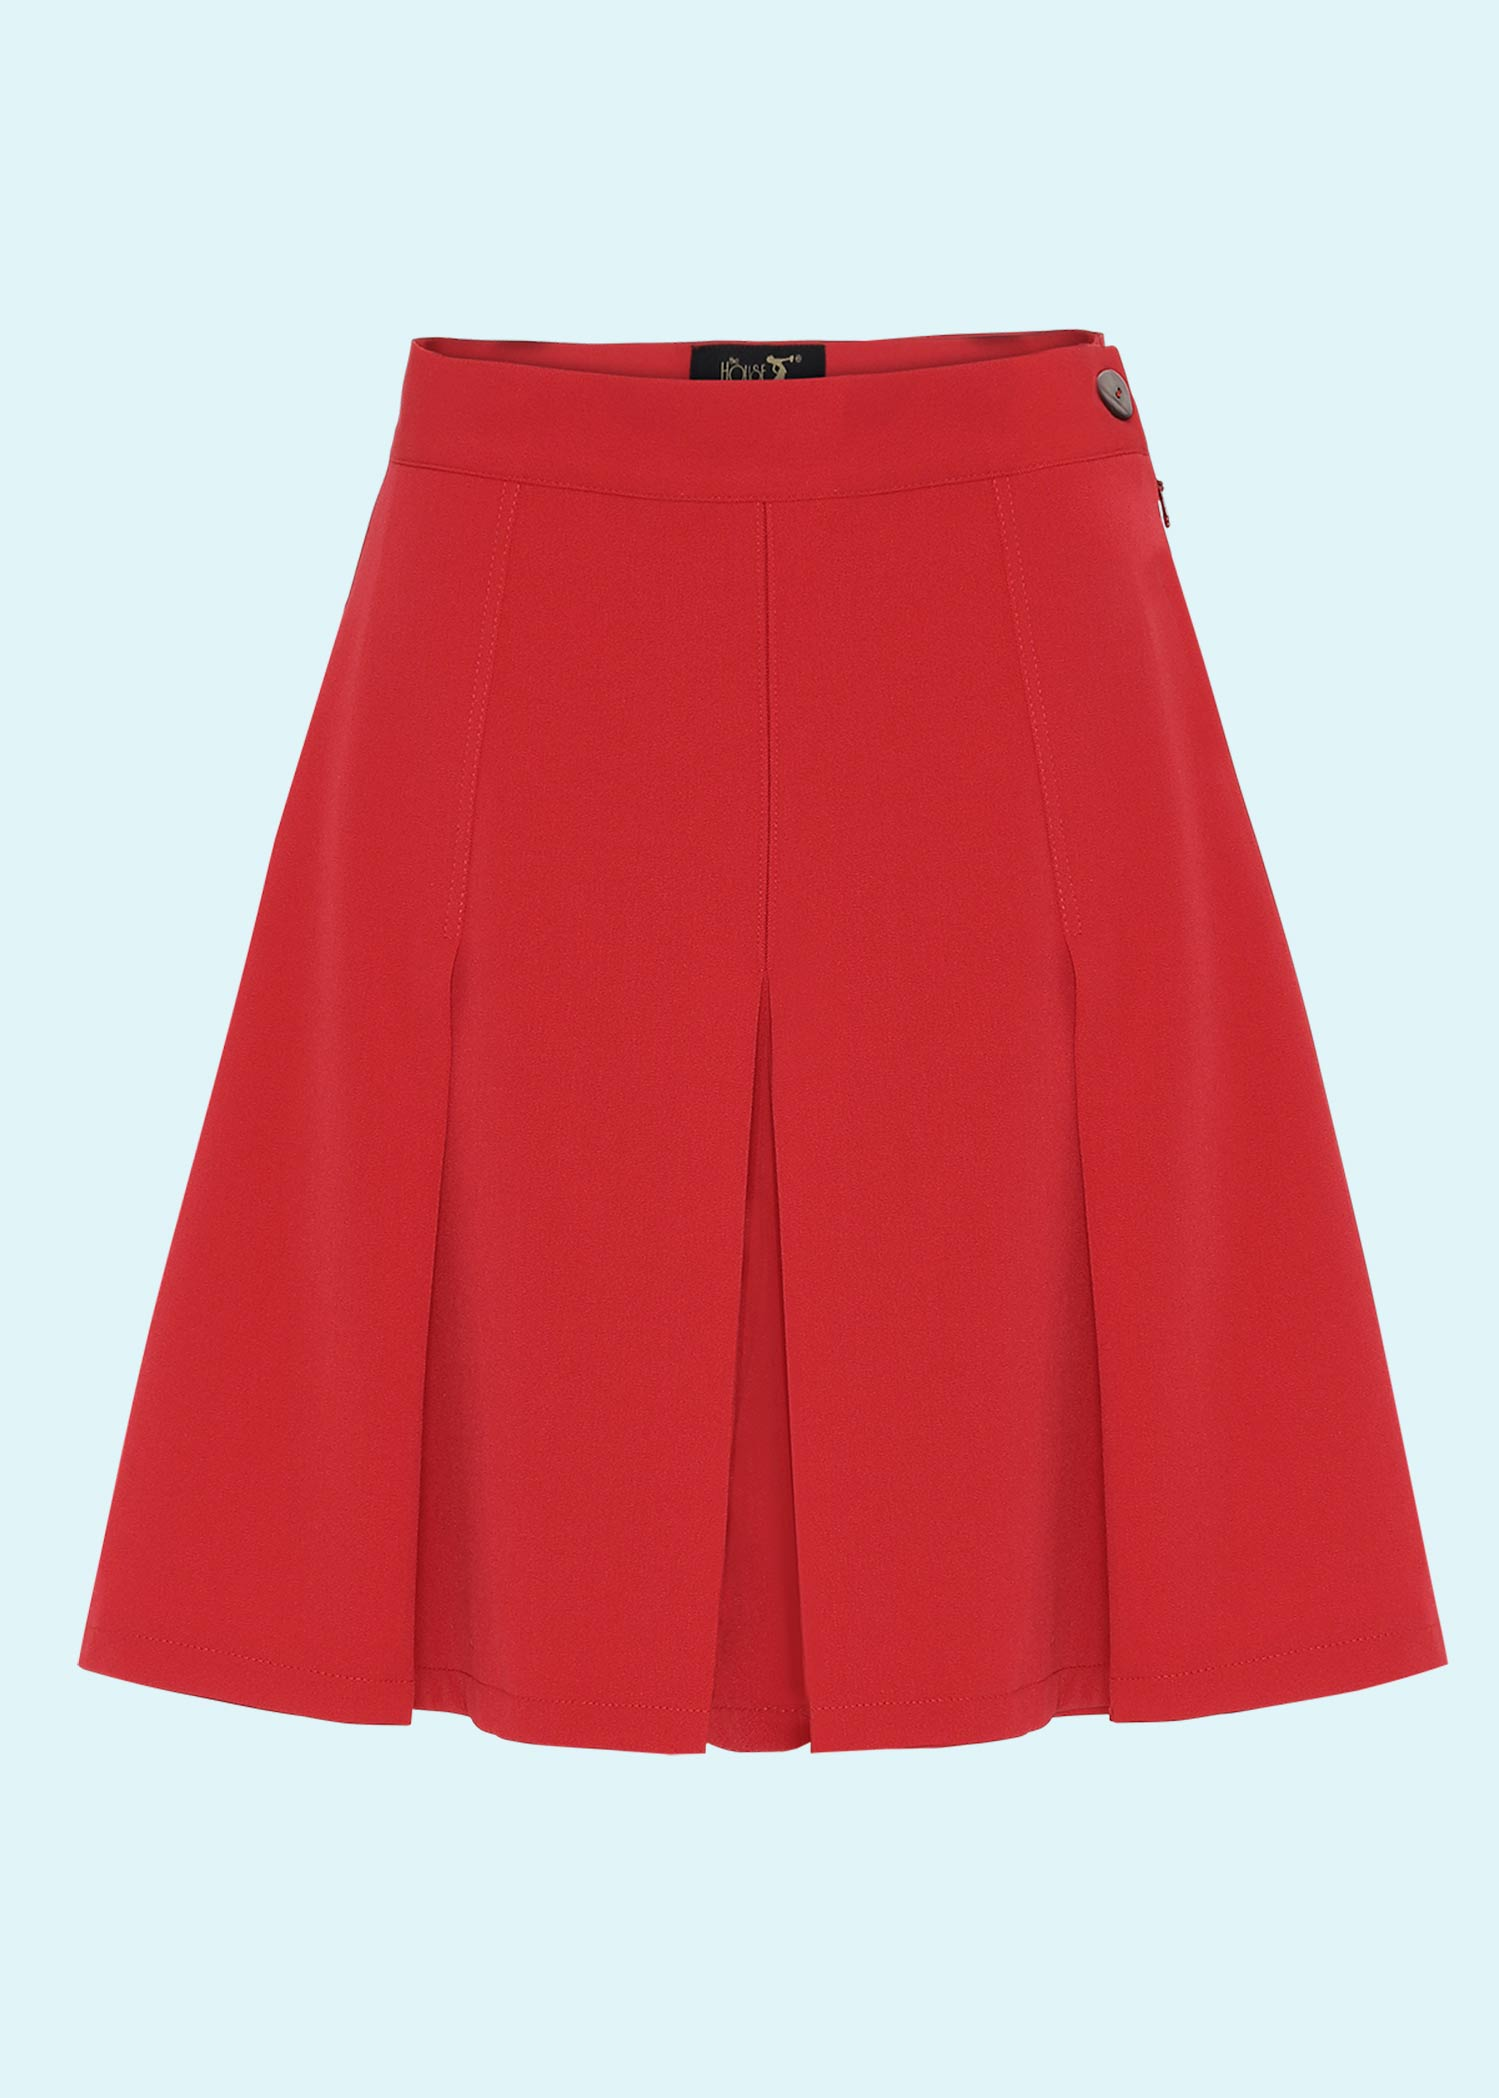 vintage 40s style pleated feminine shorts from House Of Foxy